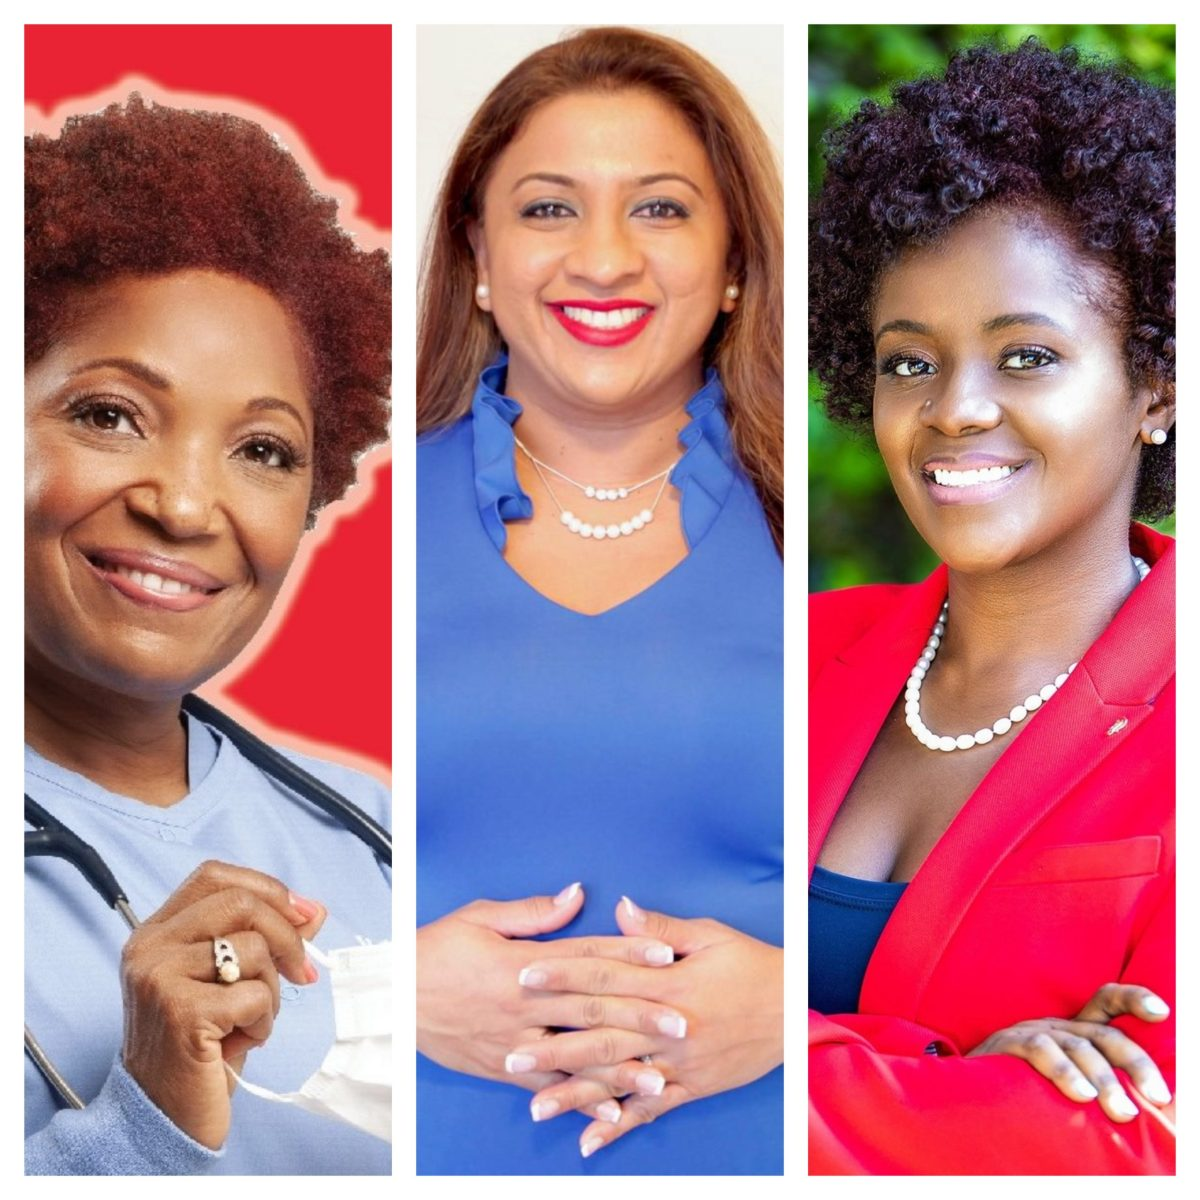 district 46 candidates